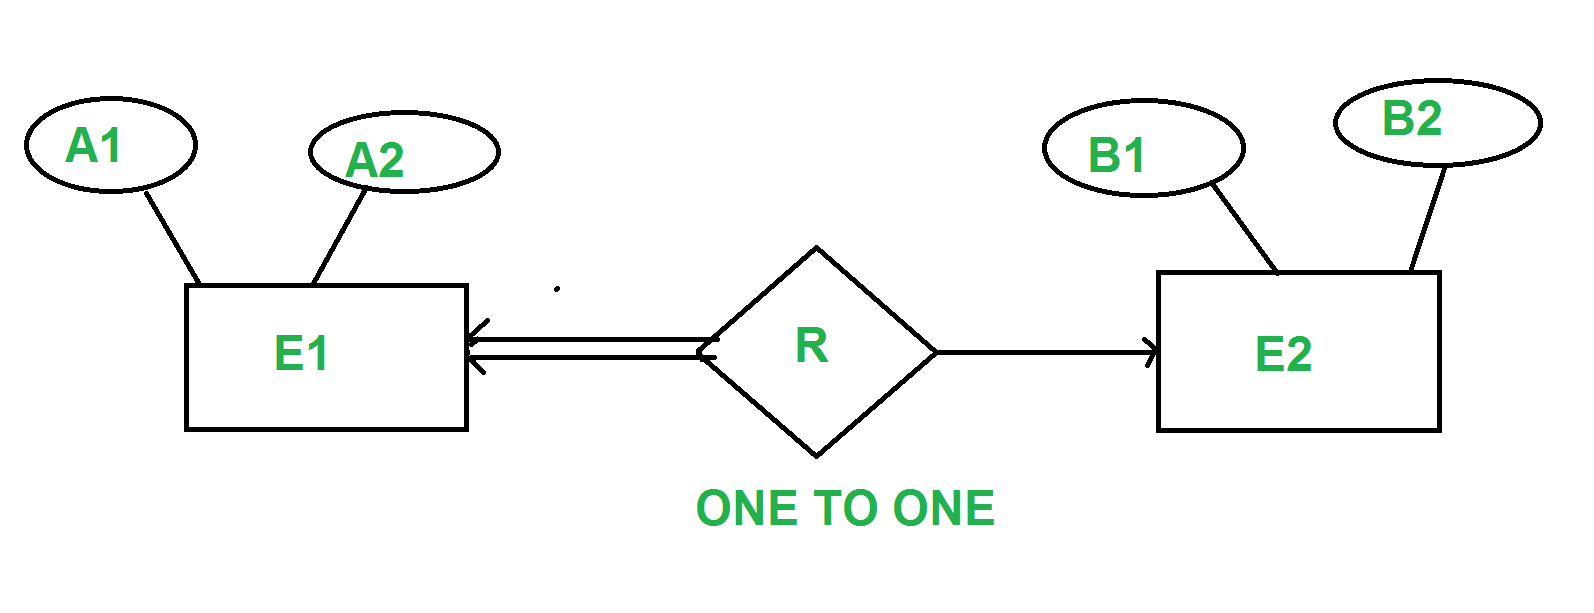 Minimization Of Er Diagrams - Geeksforgeeks pertaining to Entity Relationship Diagram In Dbms